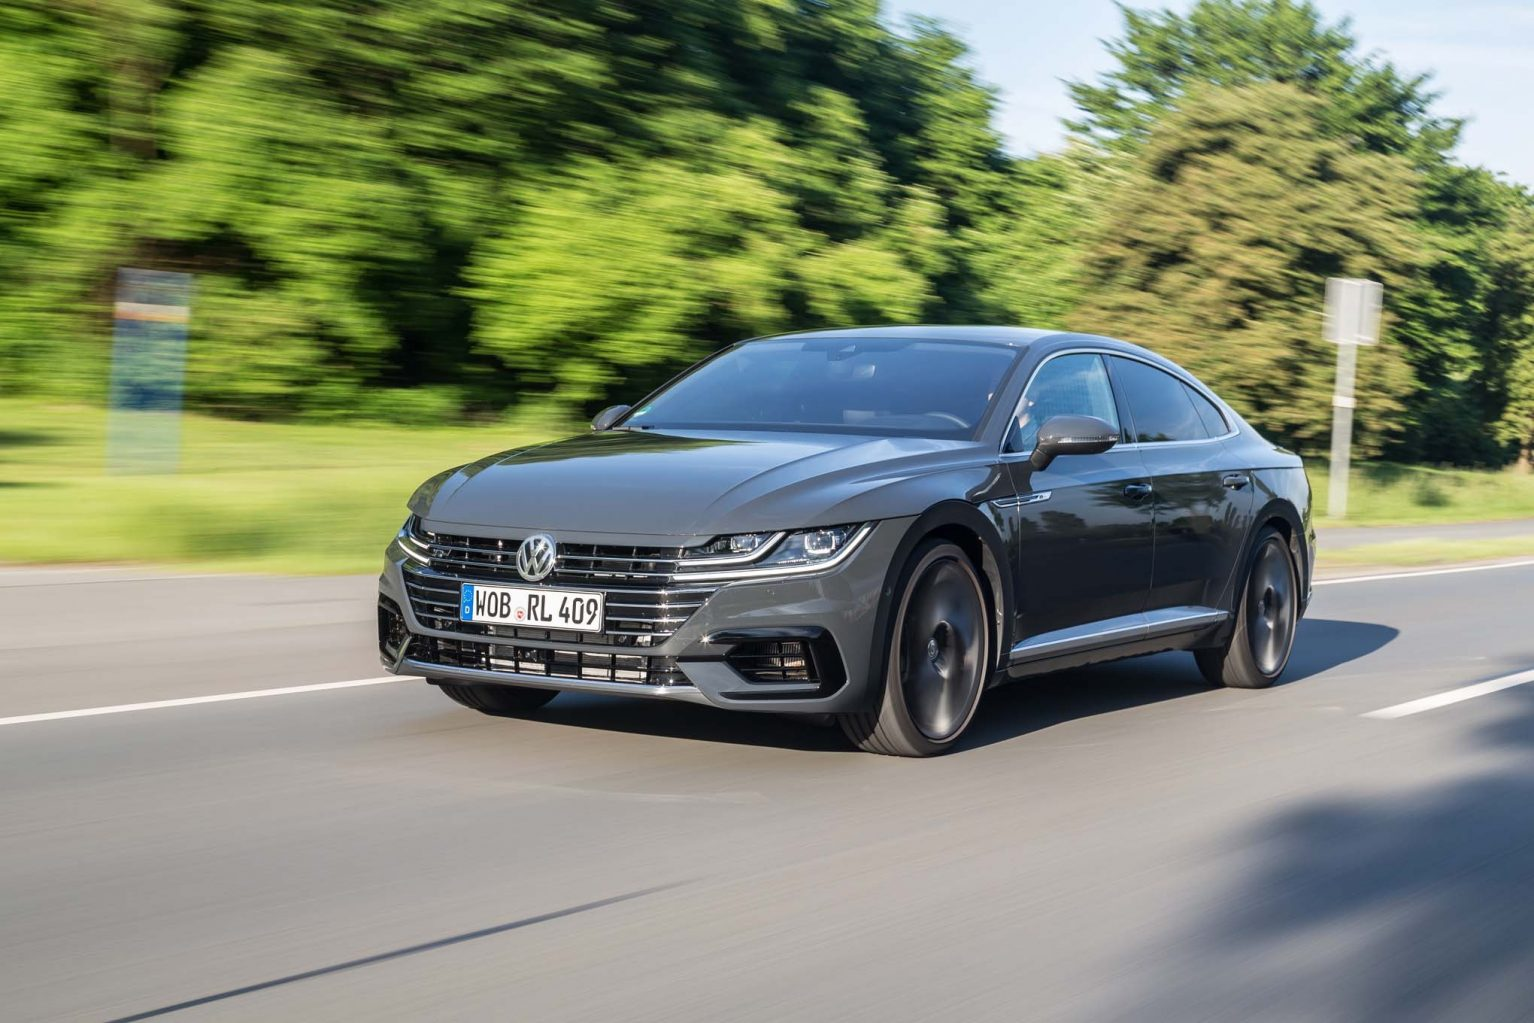 1534x1023 - Volkswagen Arteon Wallpapers 32